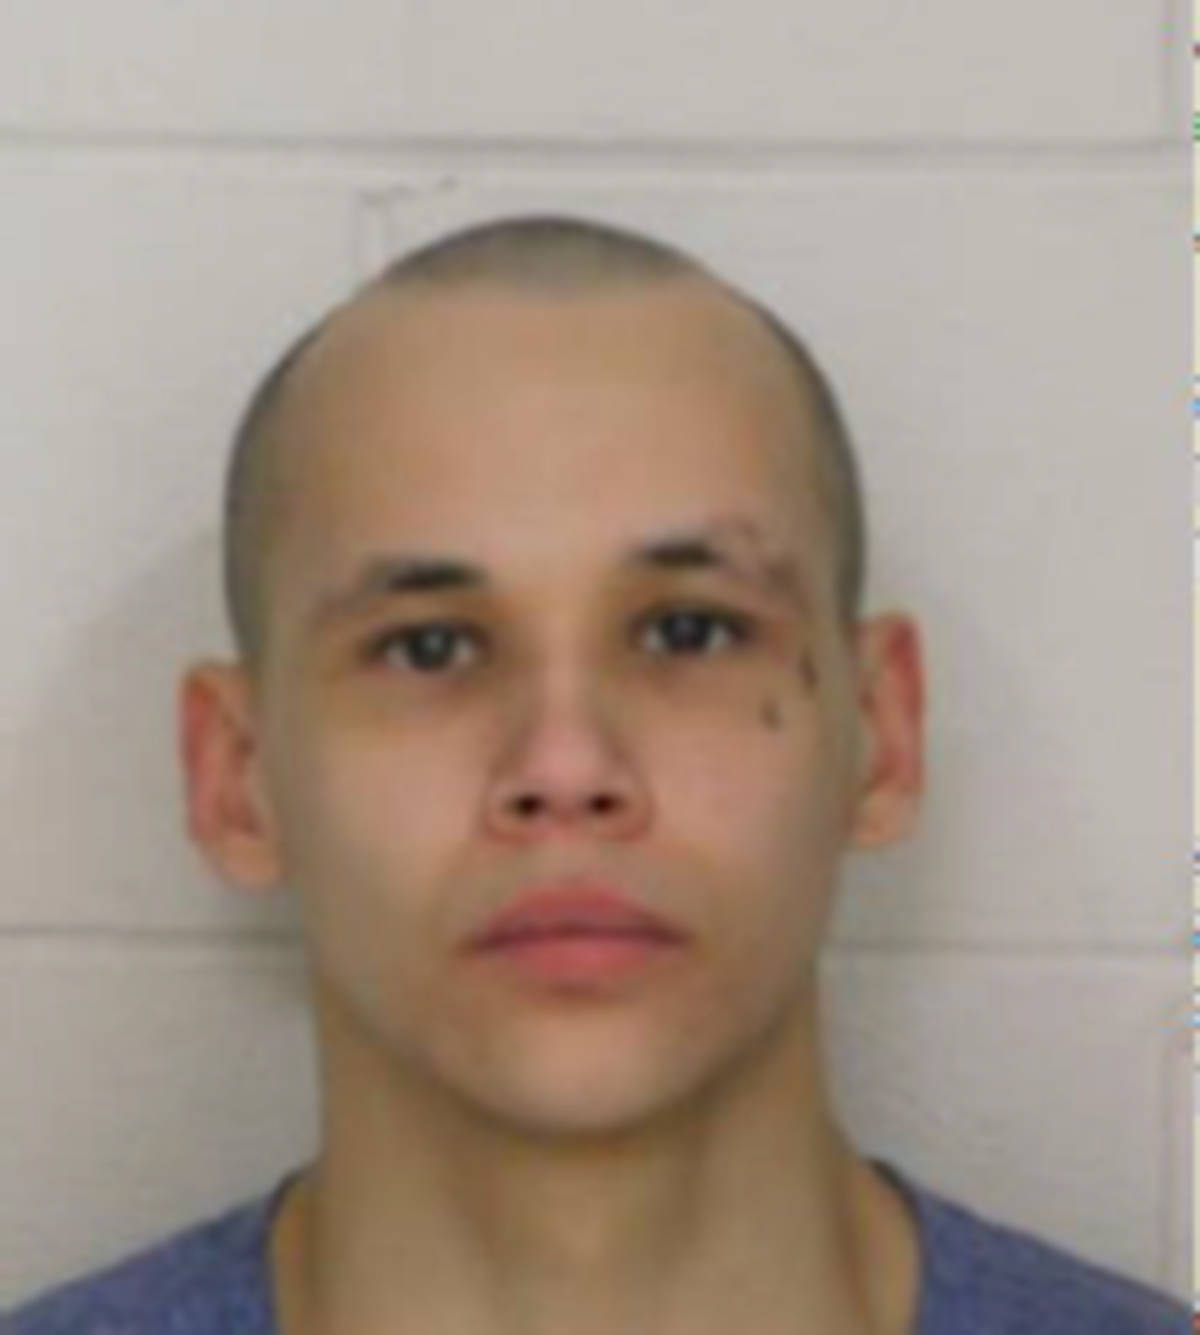 """Name: LITTLECROW, Raven Age: 22 Height: 5'5"""" ft Weight: 169 lbs Hair: Black Eyes: Brown Tattoos: Cheek – Cross (left eye) Wanted: Canada Wide Warrant – Escape Lawful custody Warrant in effect: June 8, 2021 Parole Jurisdiction: Abbotsford, BC"""